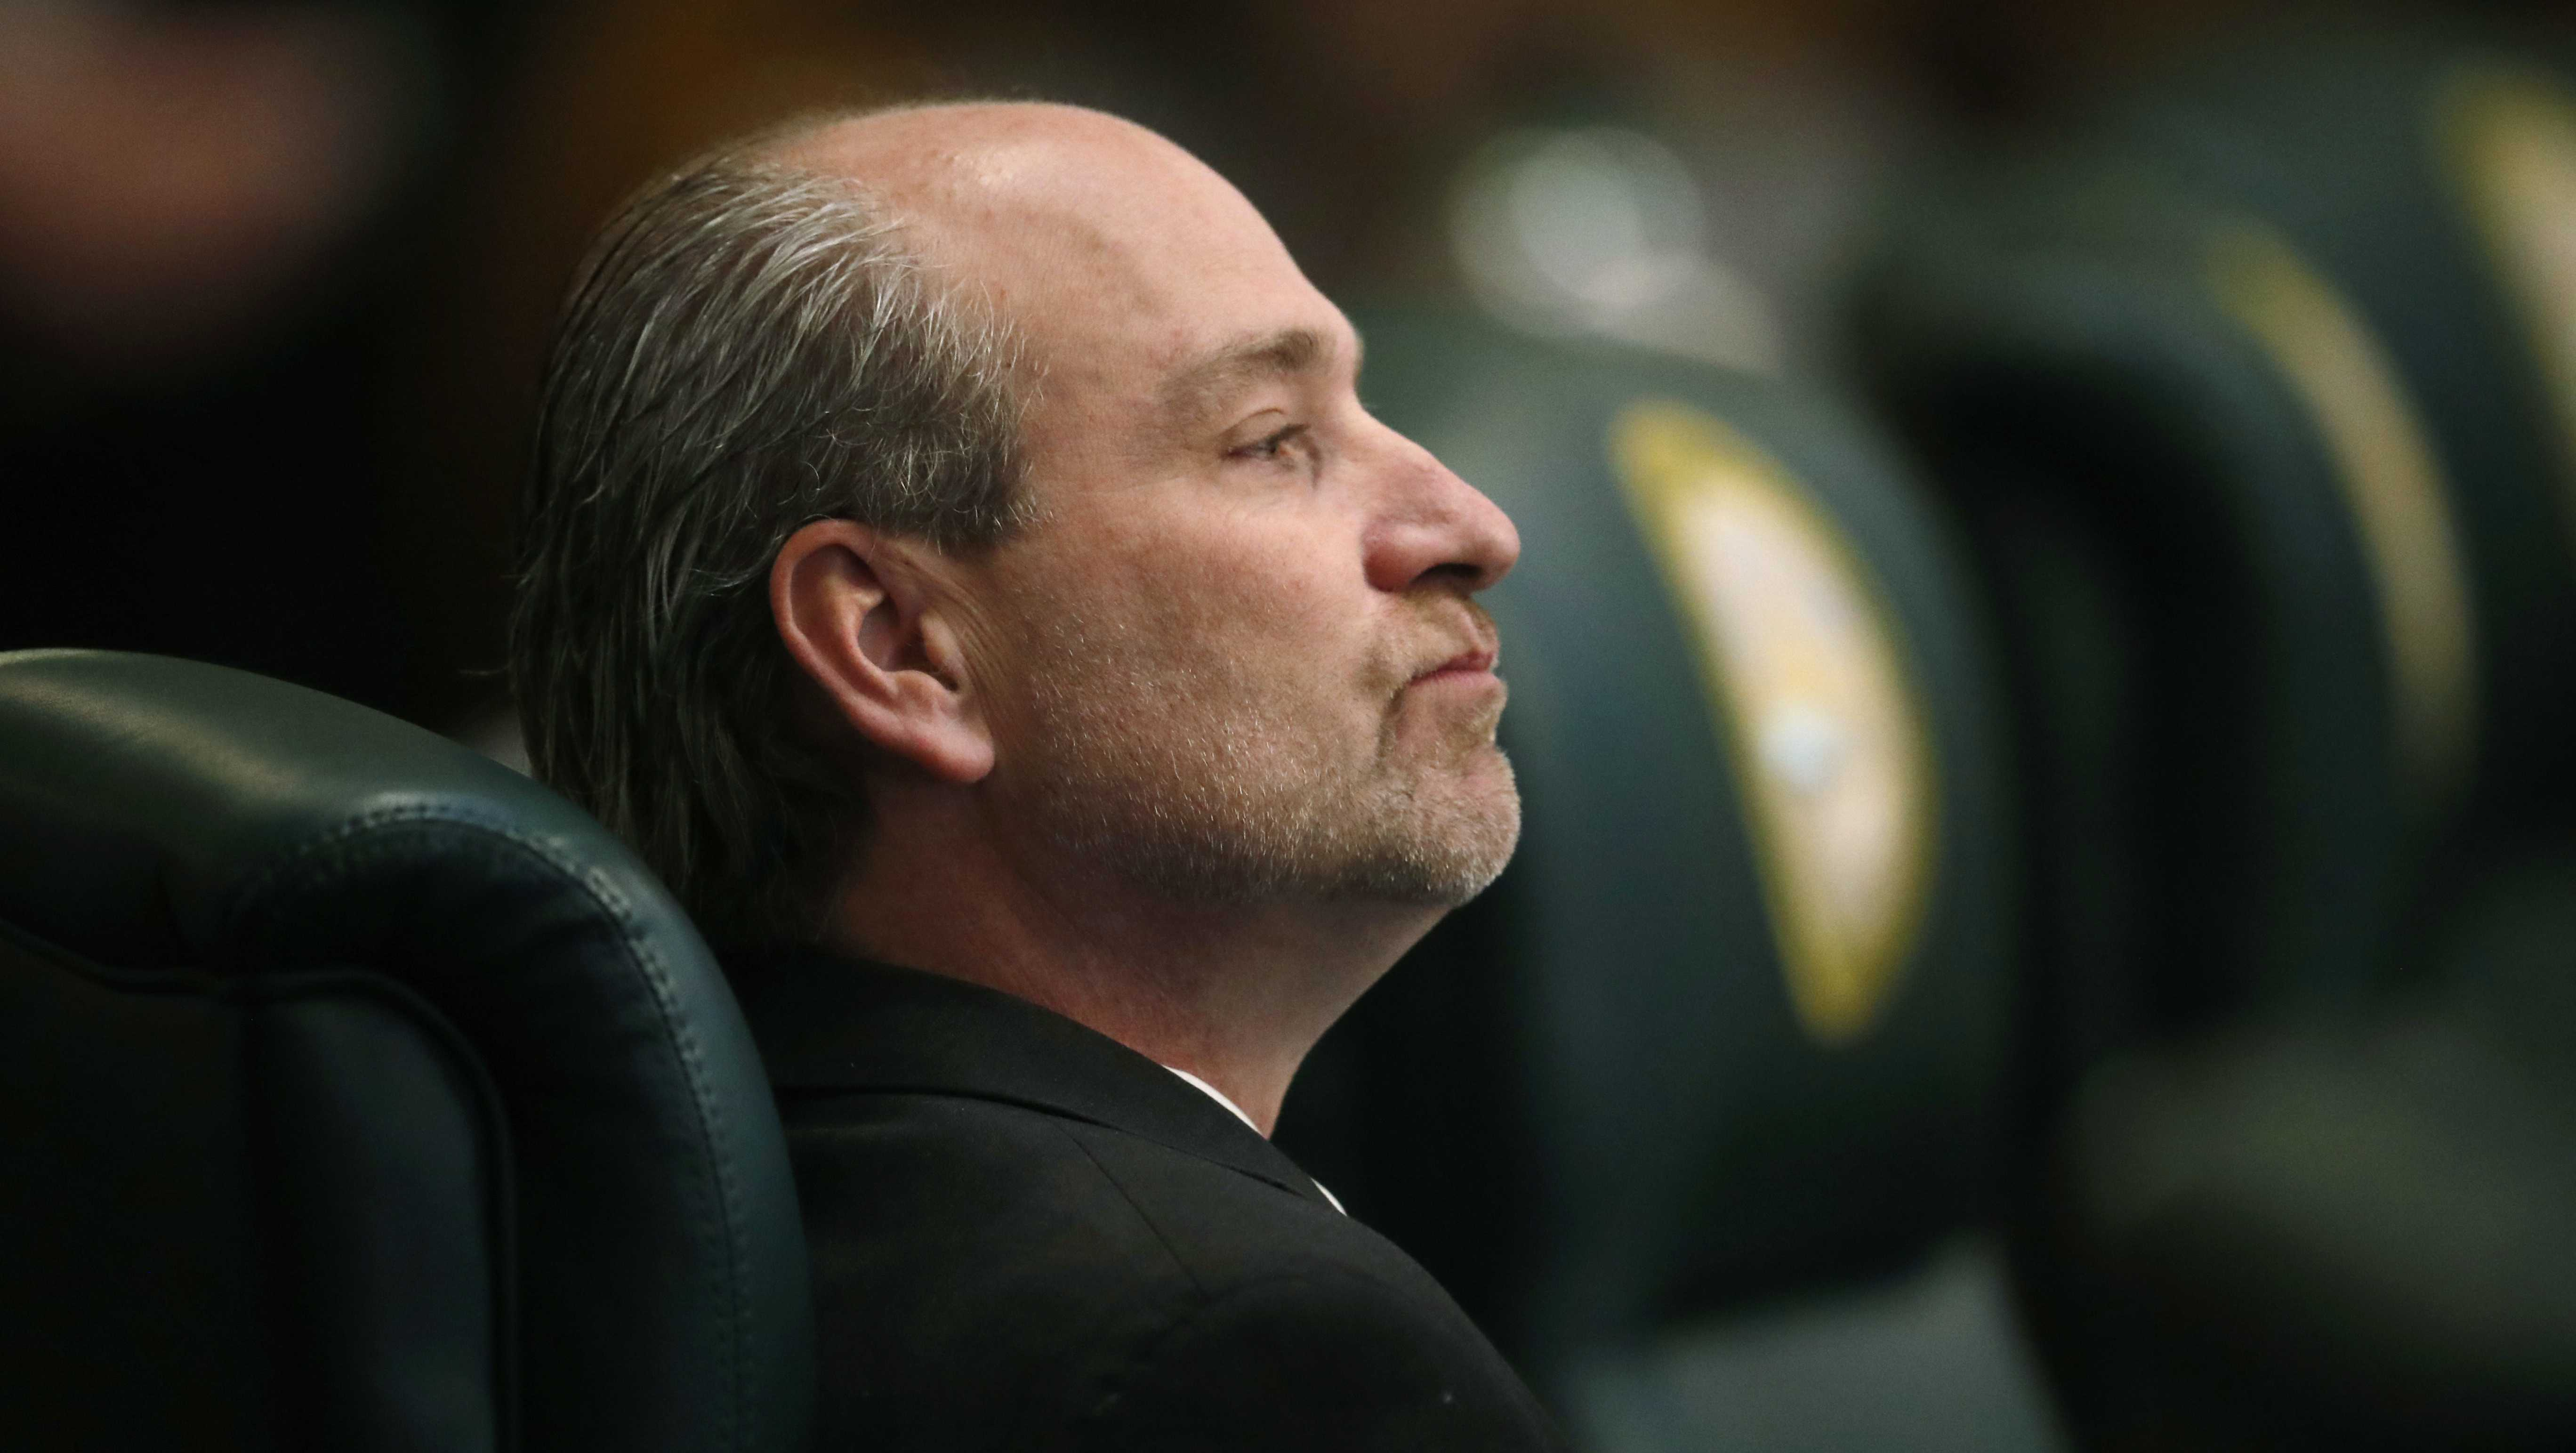 Colorado state Rep. Steve Lebsock, D-Thornton, listens during a debate in the chamber whether to expel the lawmaker over sexual misconduct allegations from his peers Friday, March 2, 2018, in the State Capitol in Denver. After hours of debate, Lebsock was expelled from the House